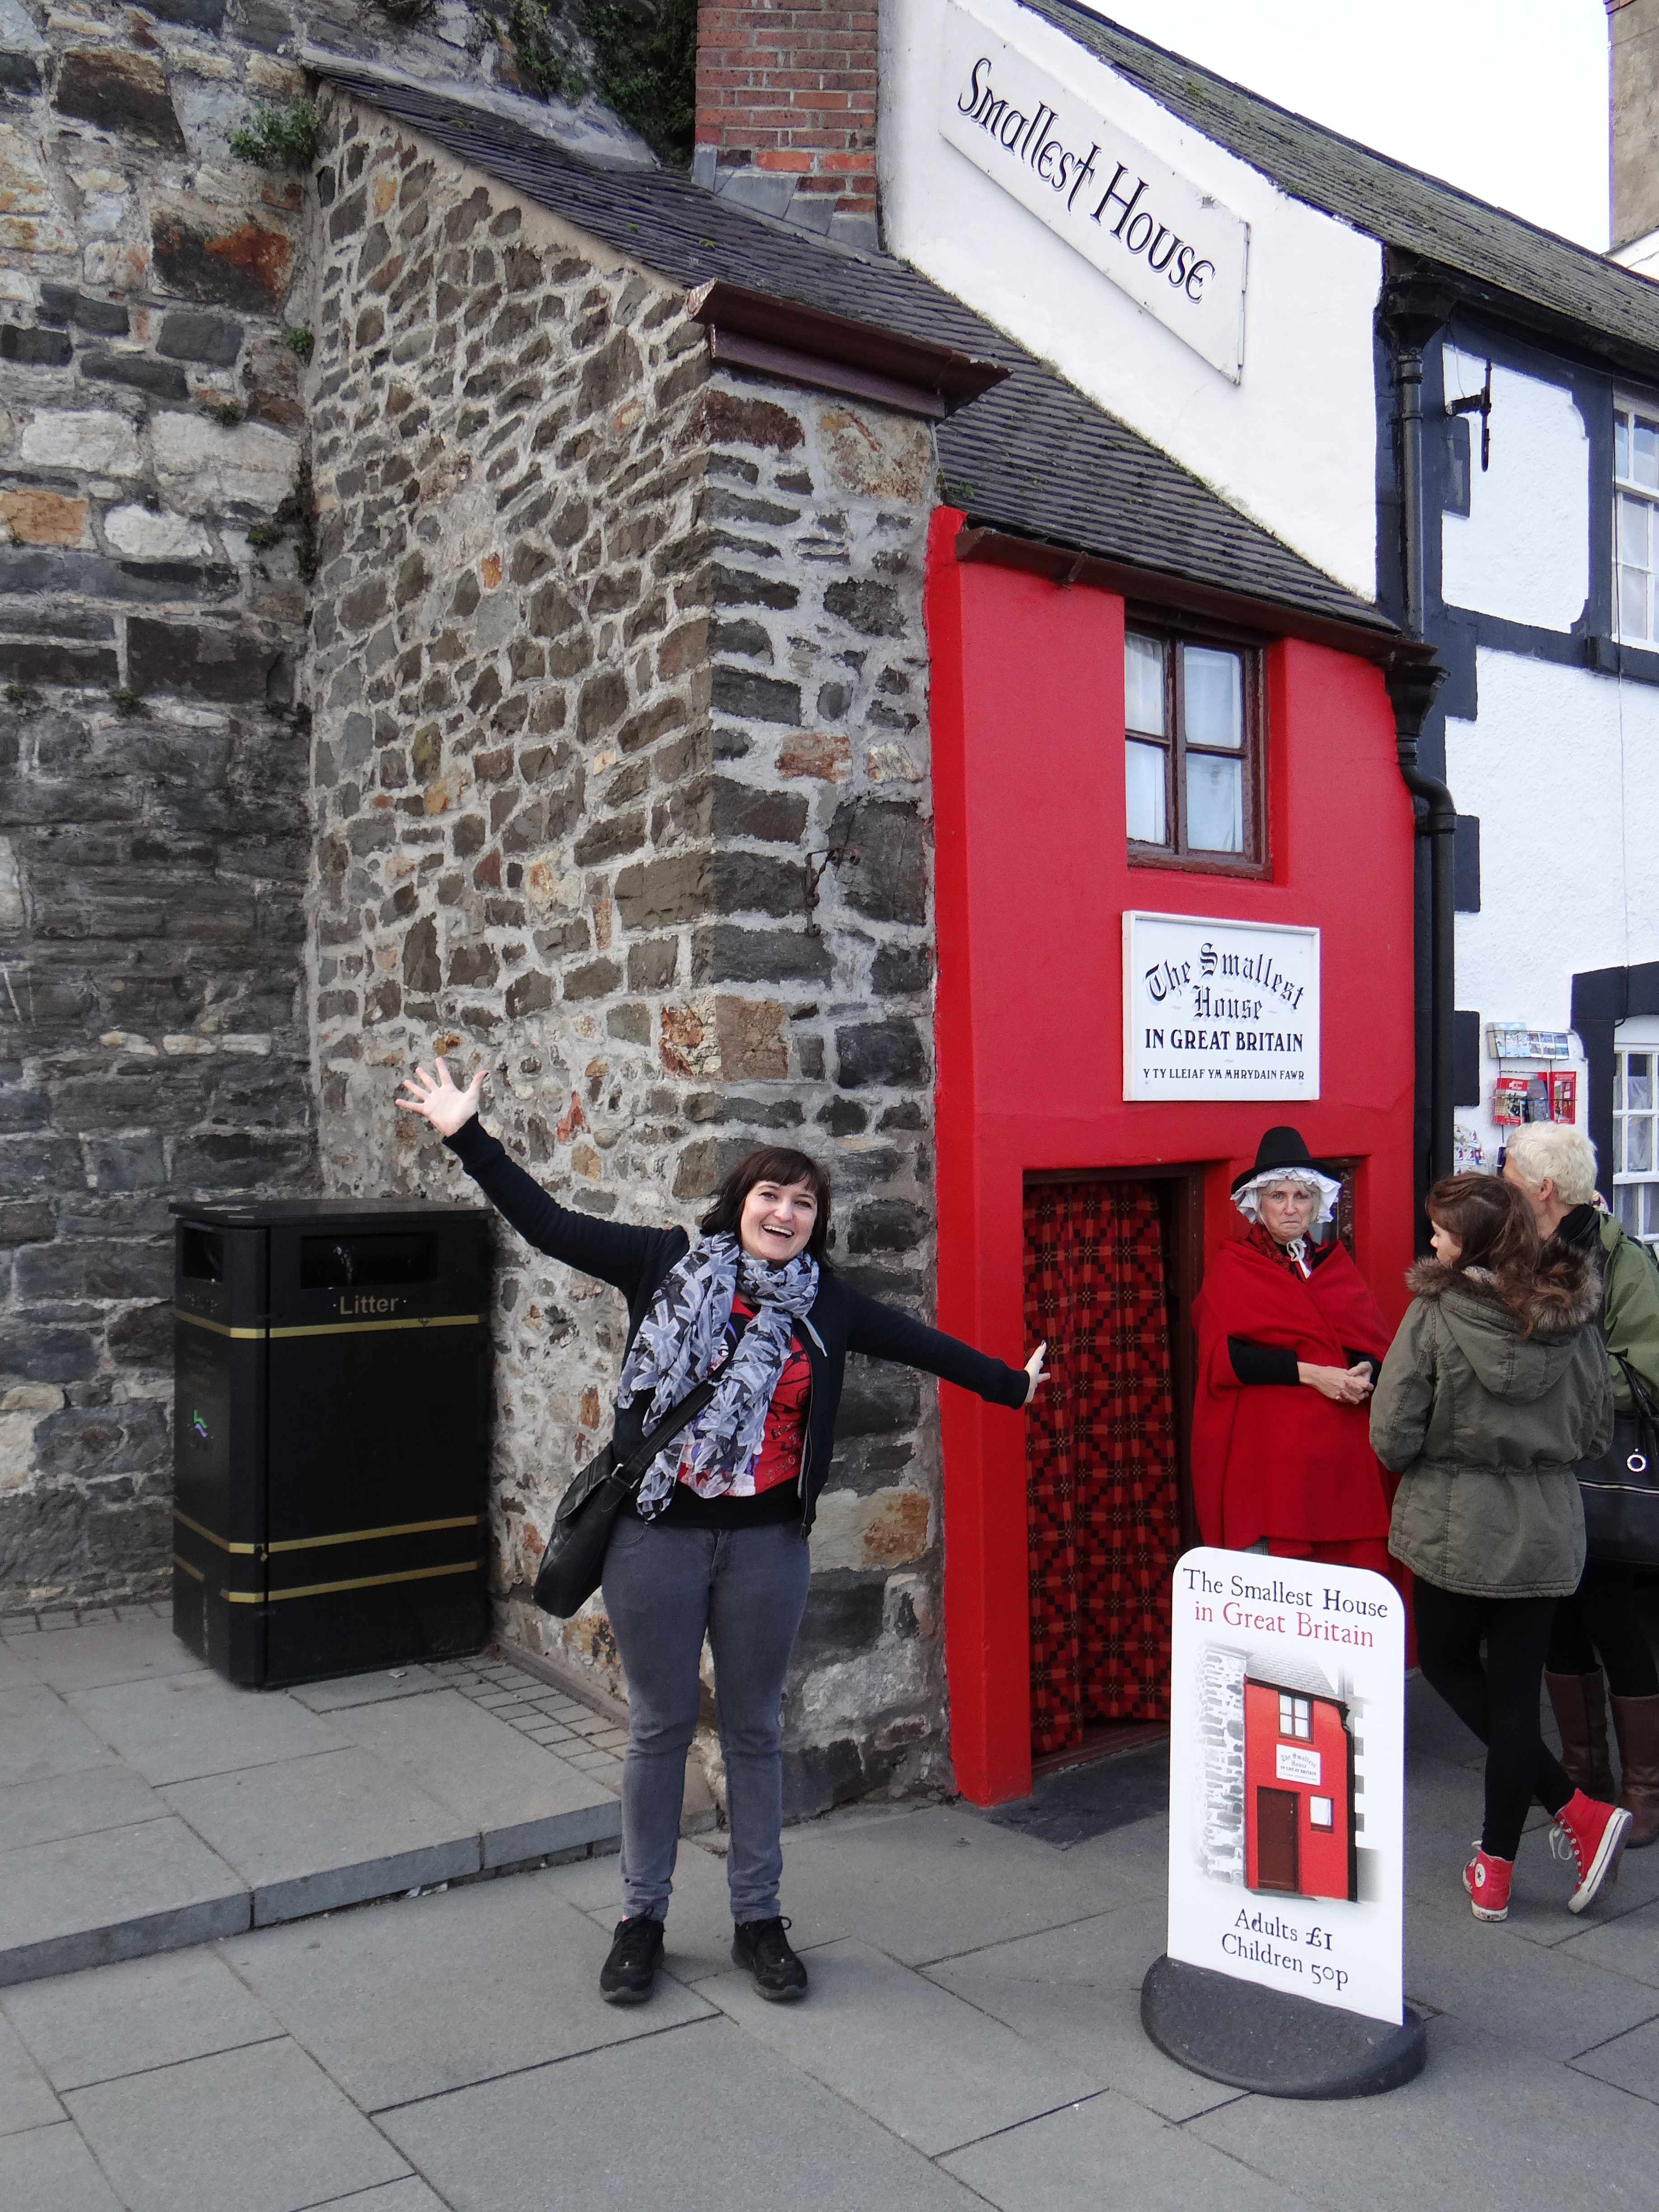 Smallest House In The World 2013 Inside quay house in conwy, wales is the smallest house in britain